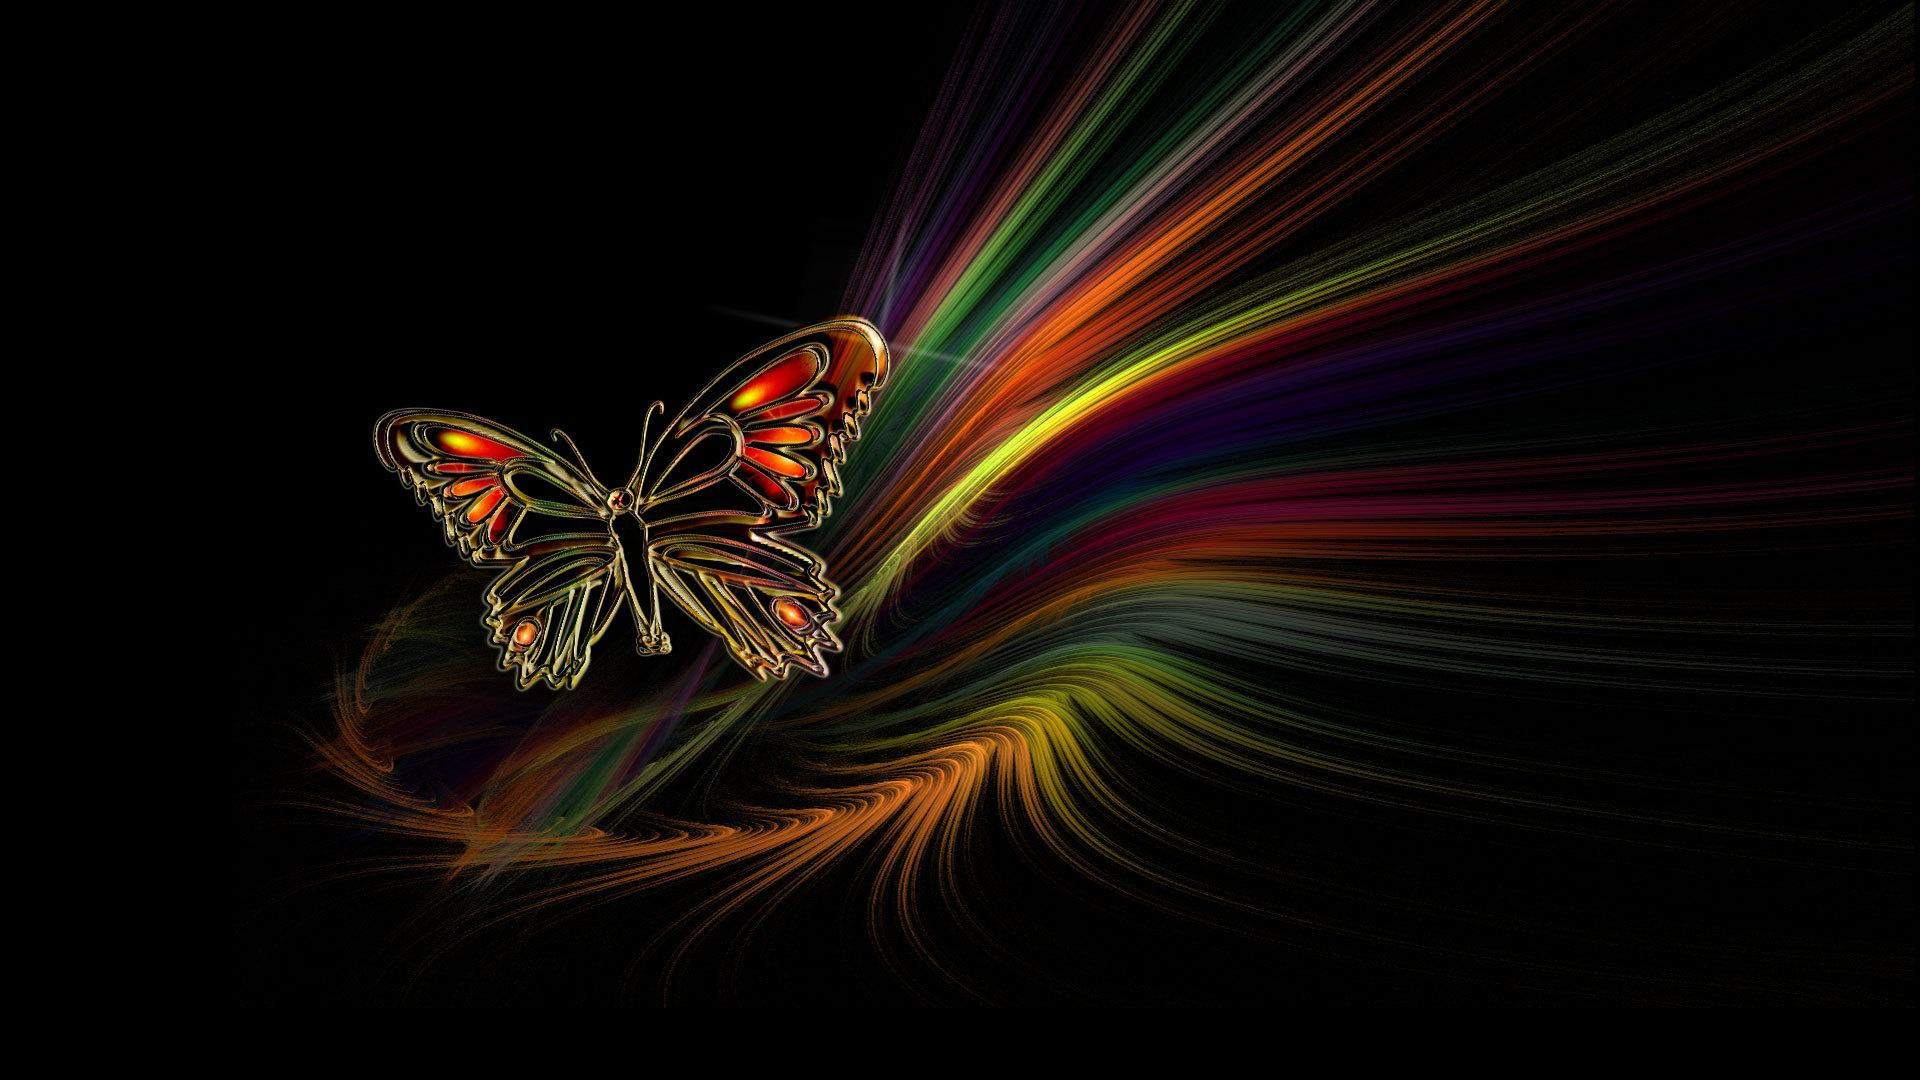 Butterfly Abstract HD Desktop Wallpaper HD Desktop Wallpaper 1920x1080